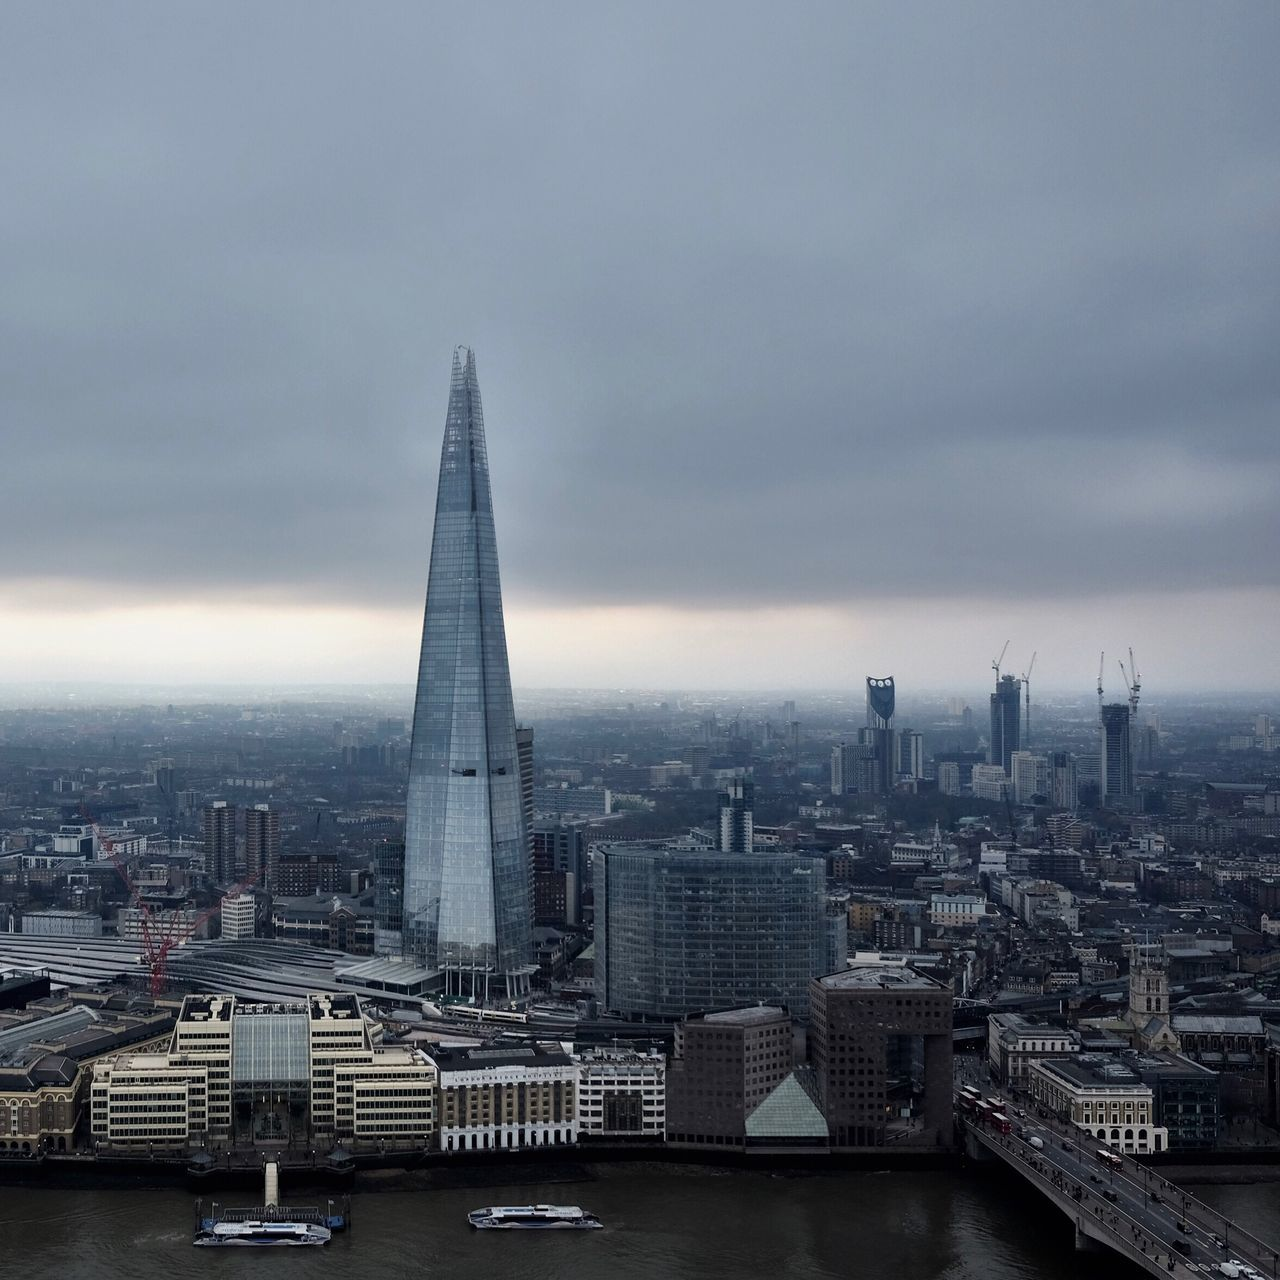 City Architecture Cityscape Tall - High Tower Sky Built Structure Skyscraper Travel Destinations Modern Building Exterior Cloud - Sky Urban Skyline Outdoors Water No People Day Downtown District The Shard